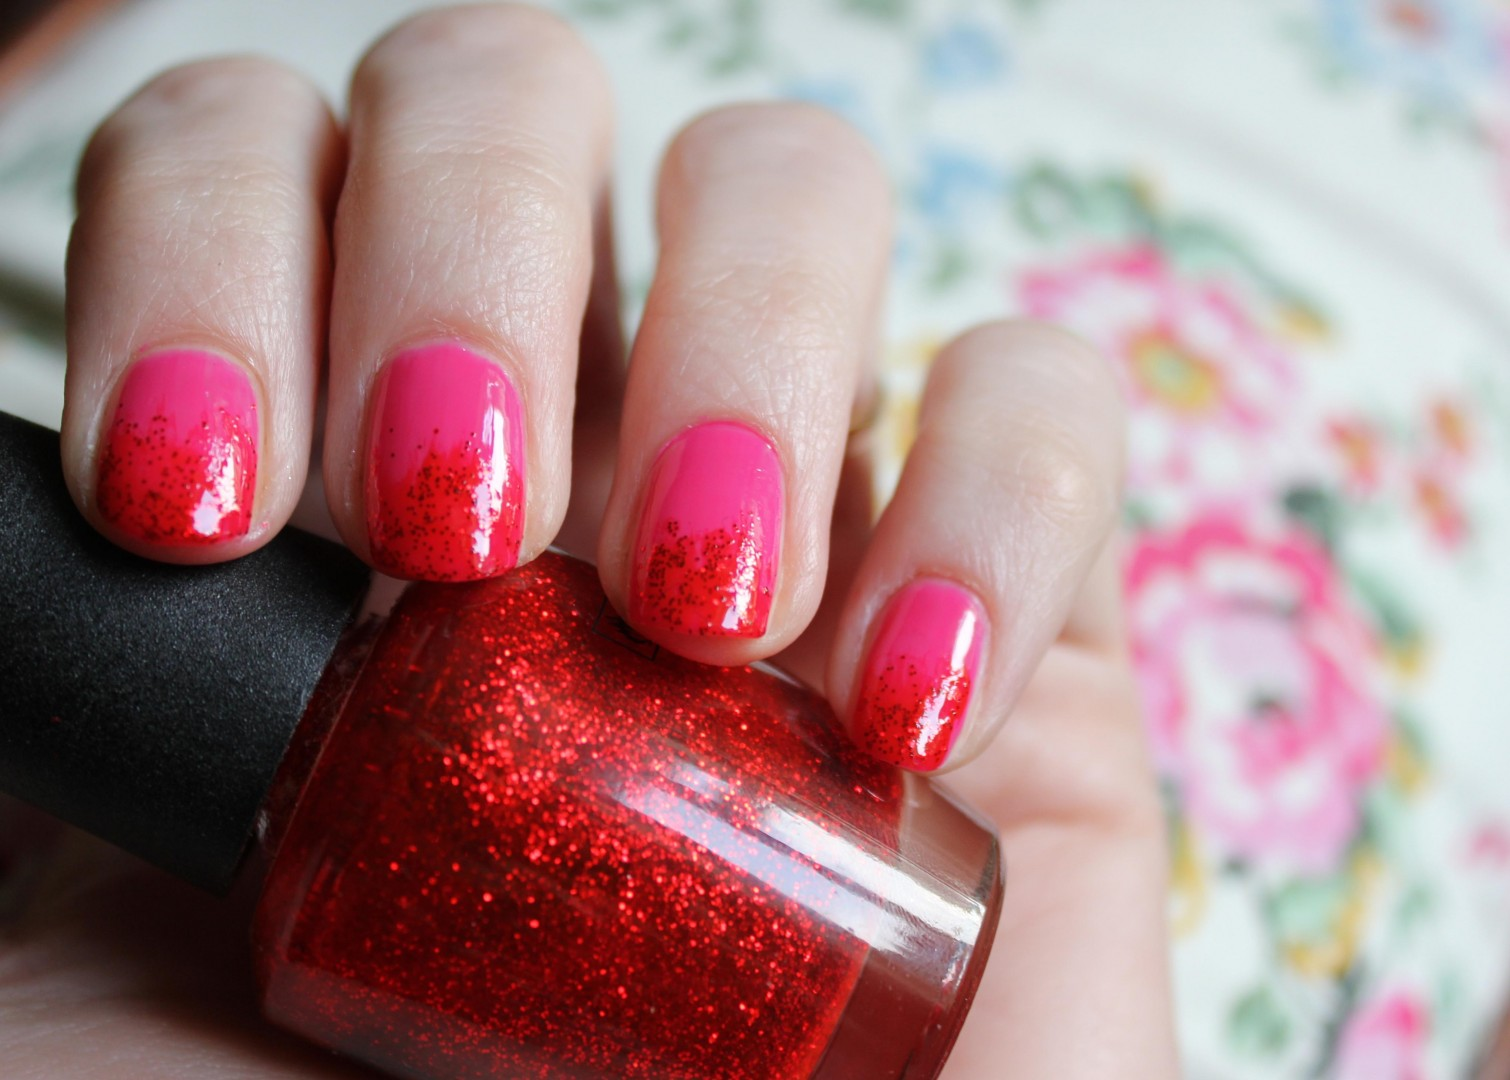 Cassiefairy Pink and Red Ombre French Tip nails - FMag.com